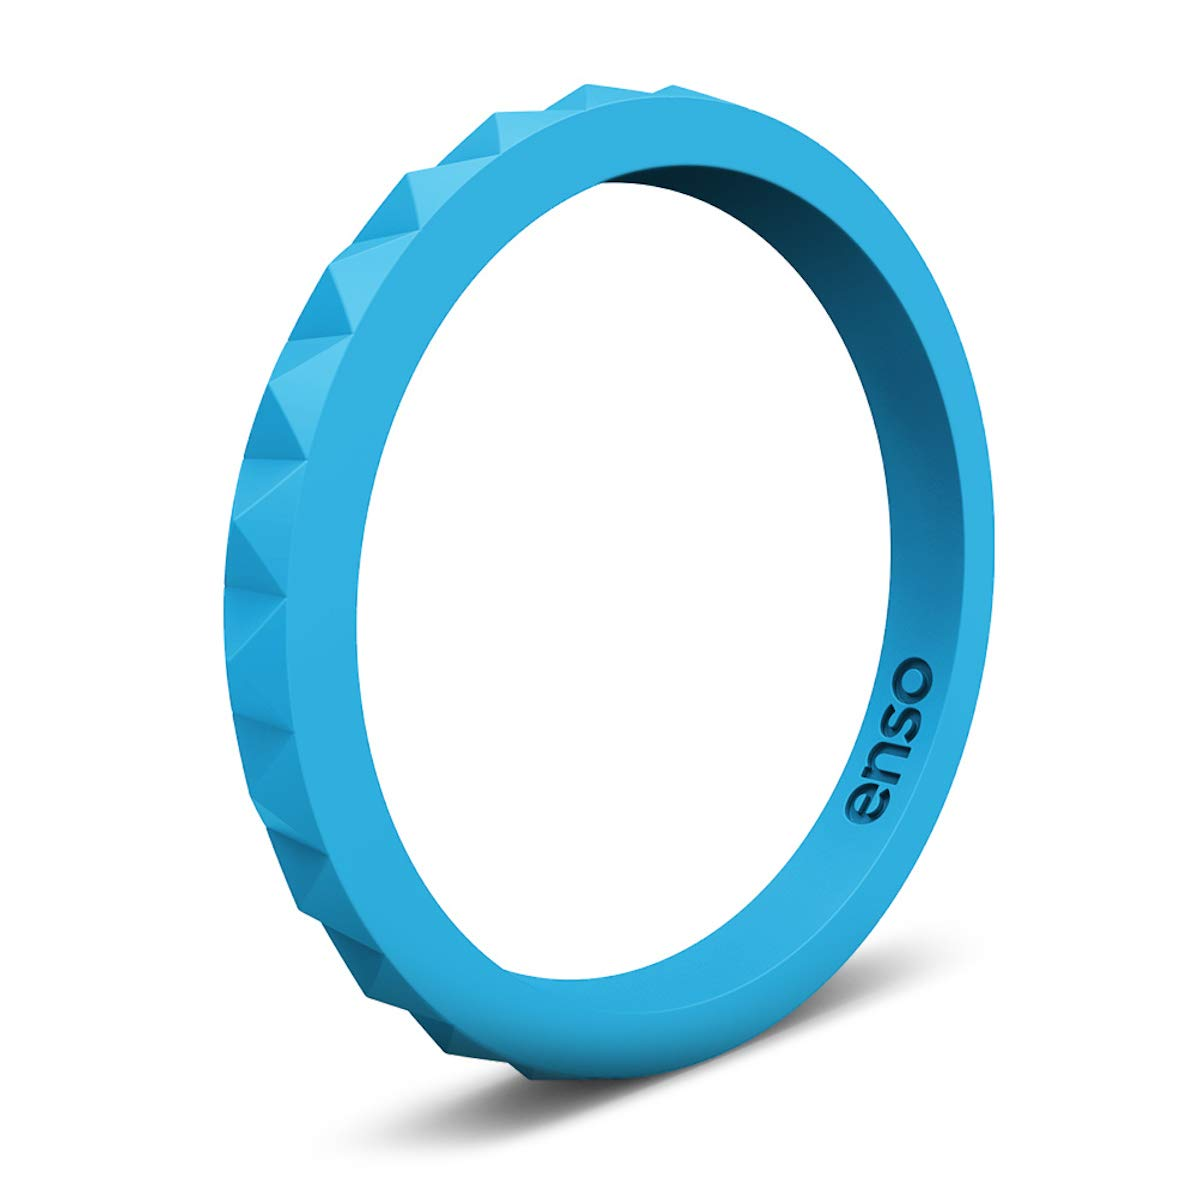 Enso Rings Pyramid Stackable Silicone Rings Premium Fashion Forward Stackable Silicone Ring - Don't Be Fooled by Competitors - Multiple Matching Colors - Lifetime Quality Promise